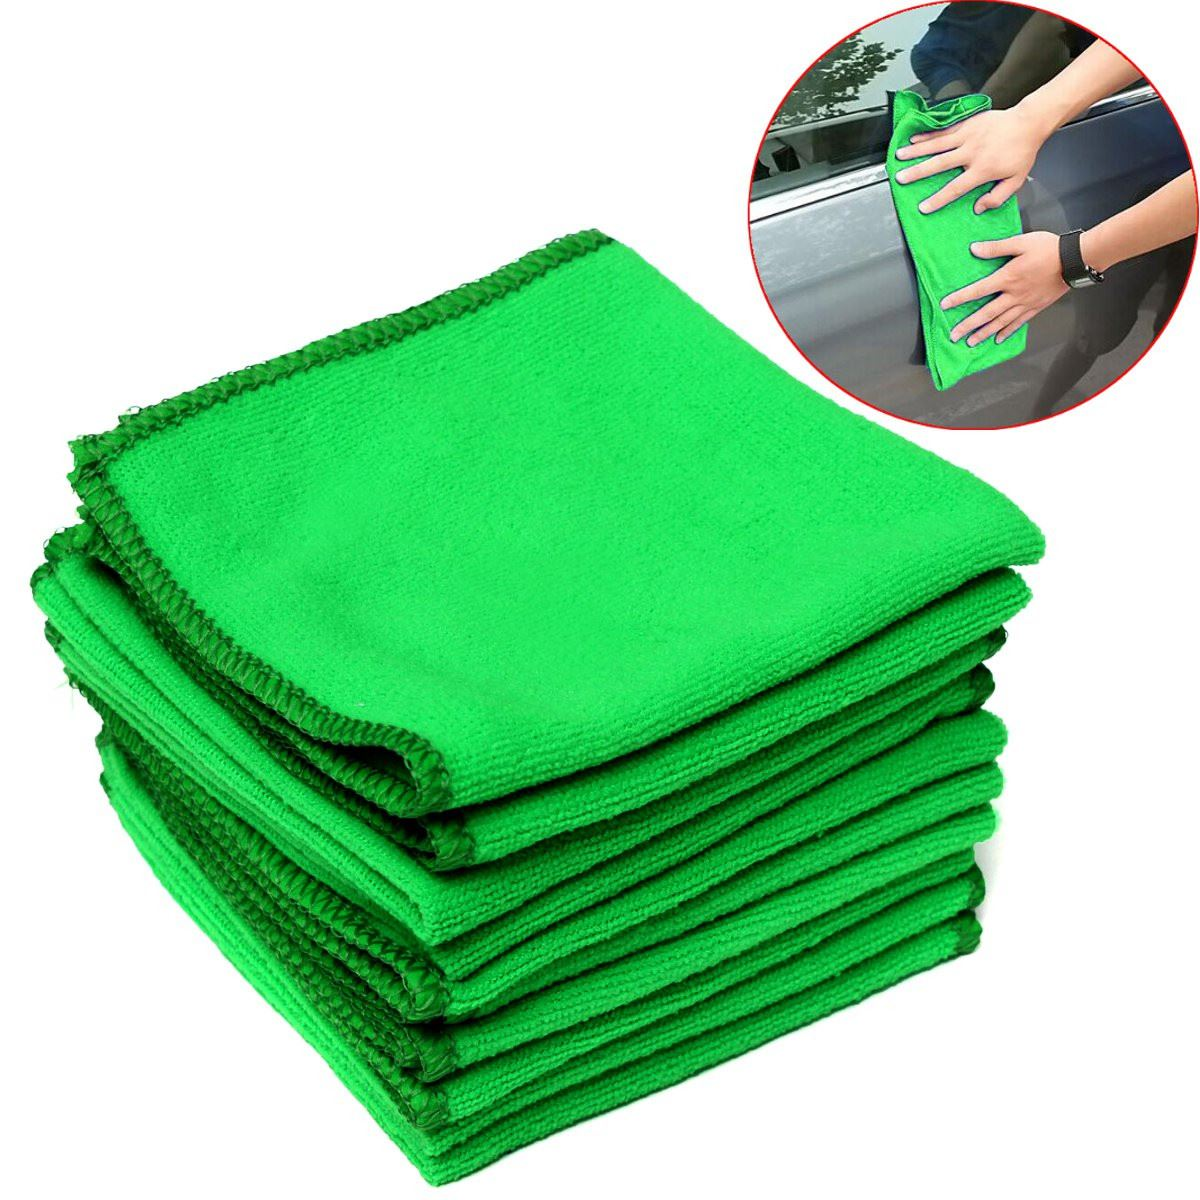 10Pcs Green Microfiber Cleaning Car Auto Detailing Cloth